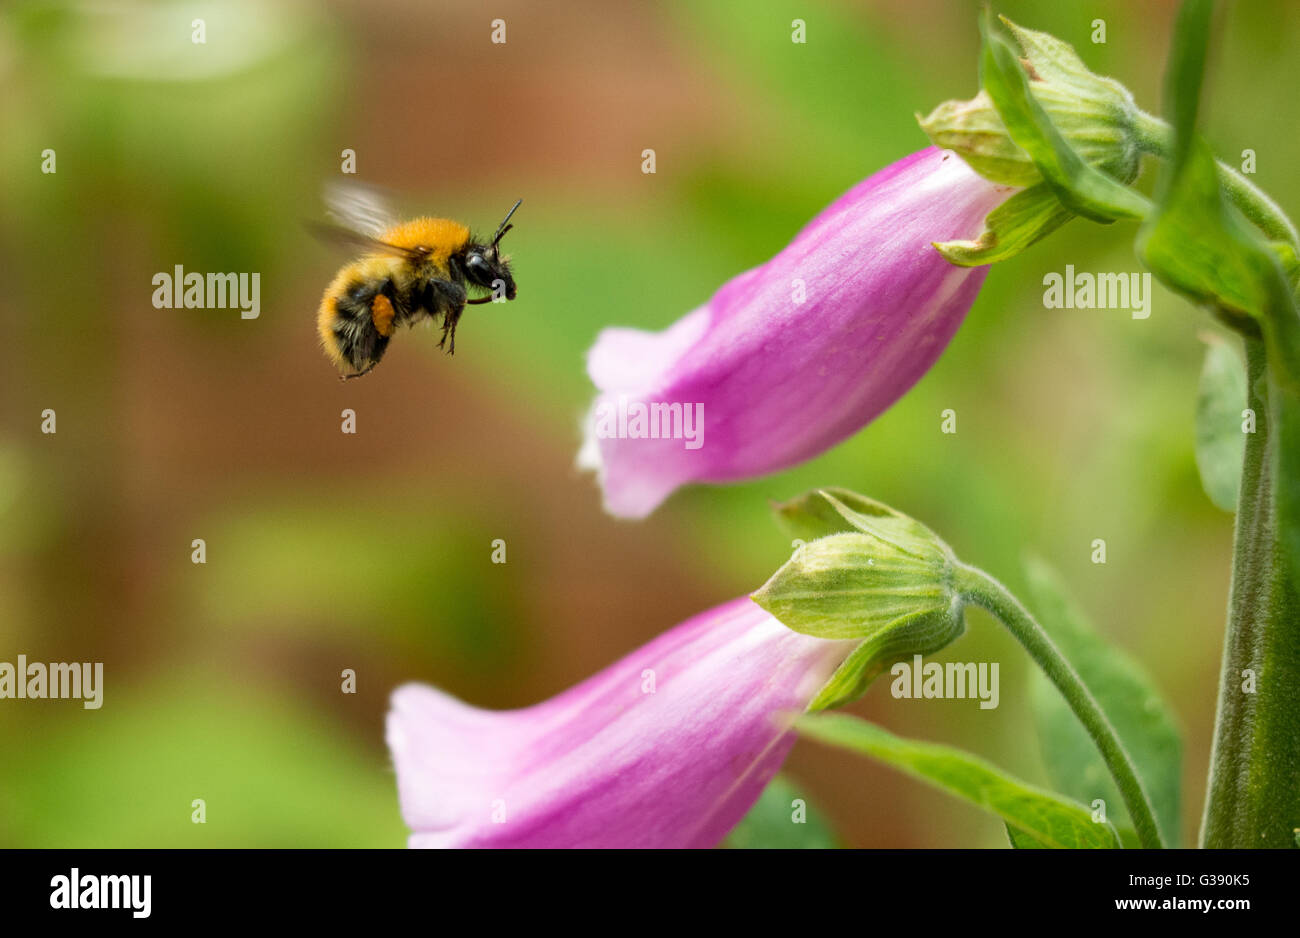 Warm weather with hazy sunshine and the purple foxgloves are at their peak. Ideal working conditions for bees. - Stock Image